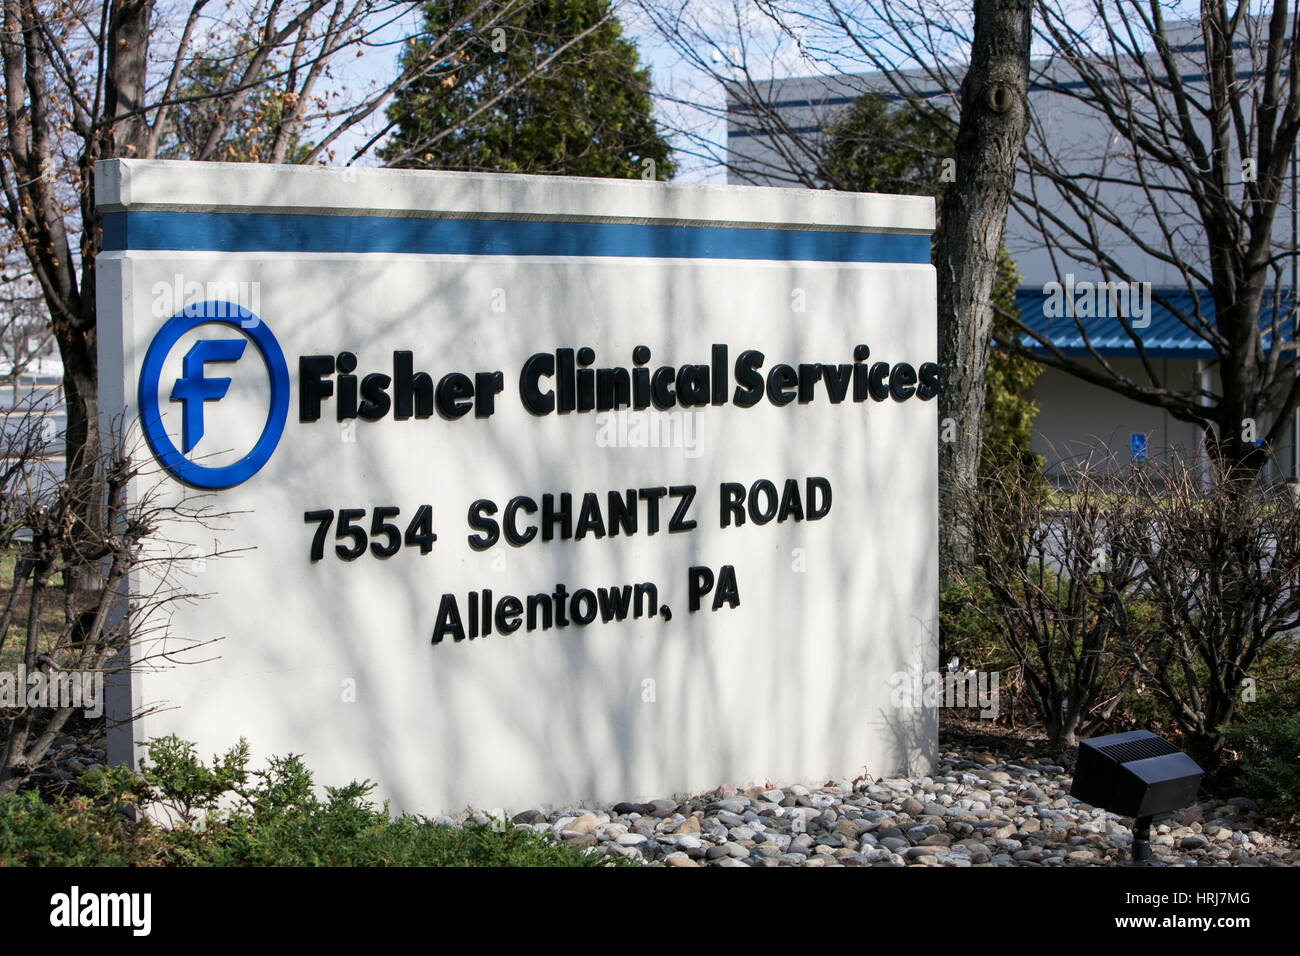 A logo sign outside of a facility occupied by Fisher Clinical Services in Allentown, Pennsylvania on February 26, - Stock Image